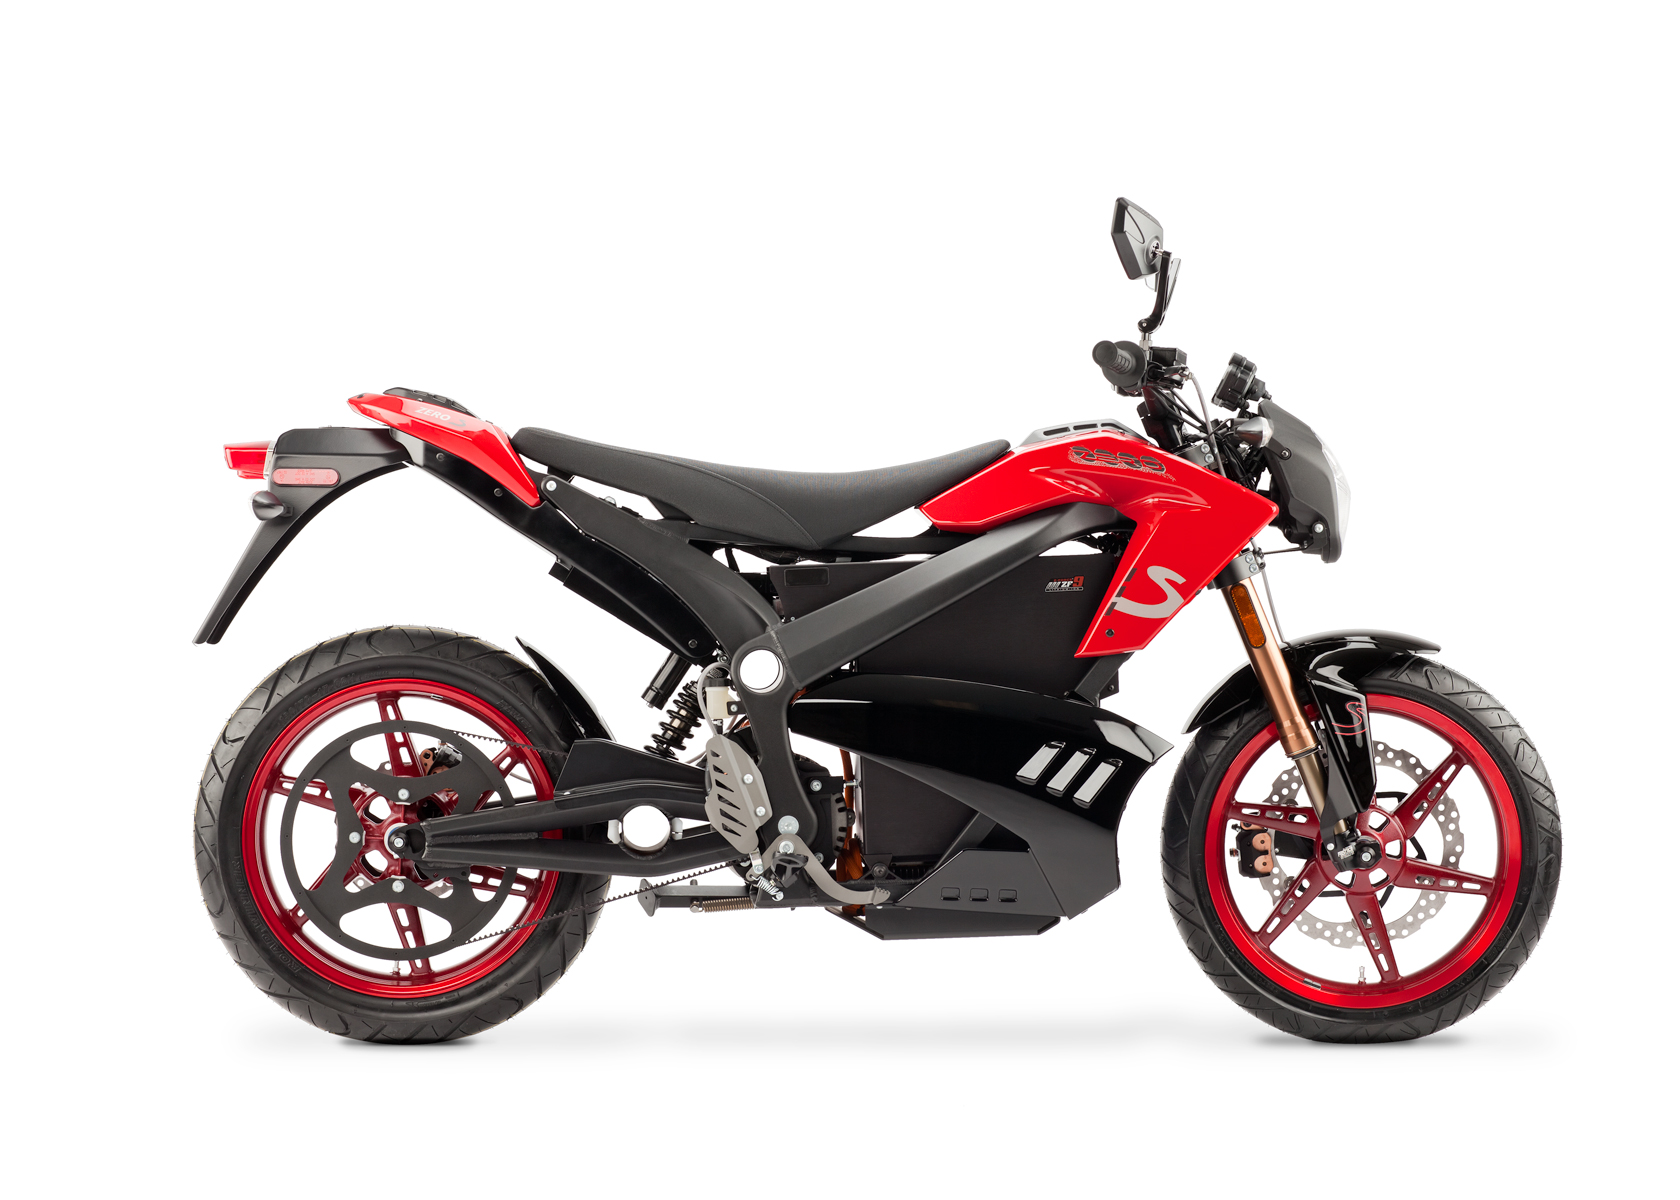 2012 Zero S Electric Motorcycle: Red Profile Right, White Background